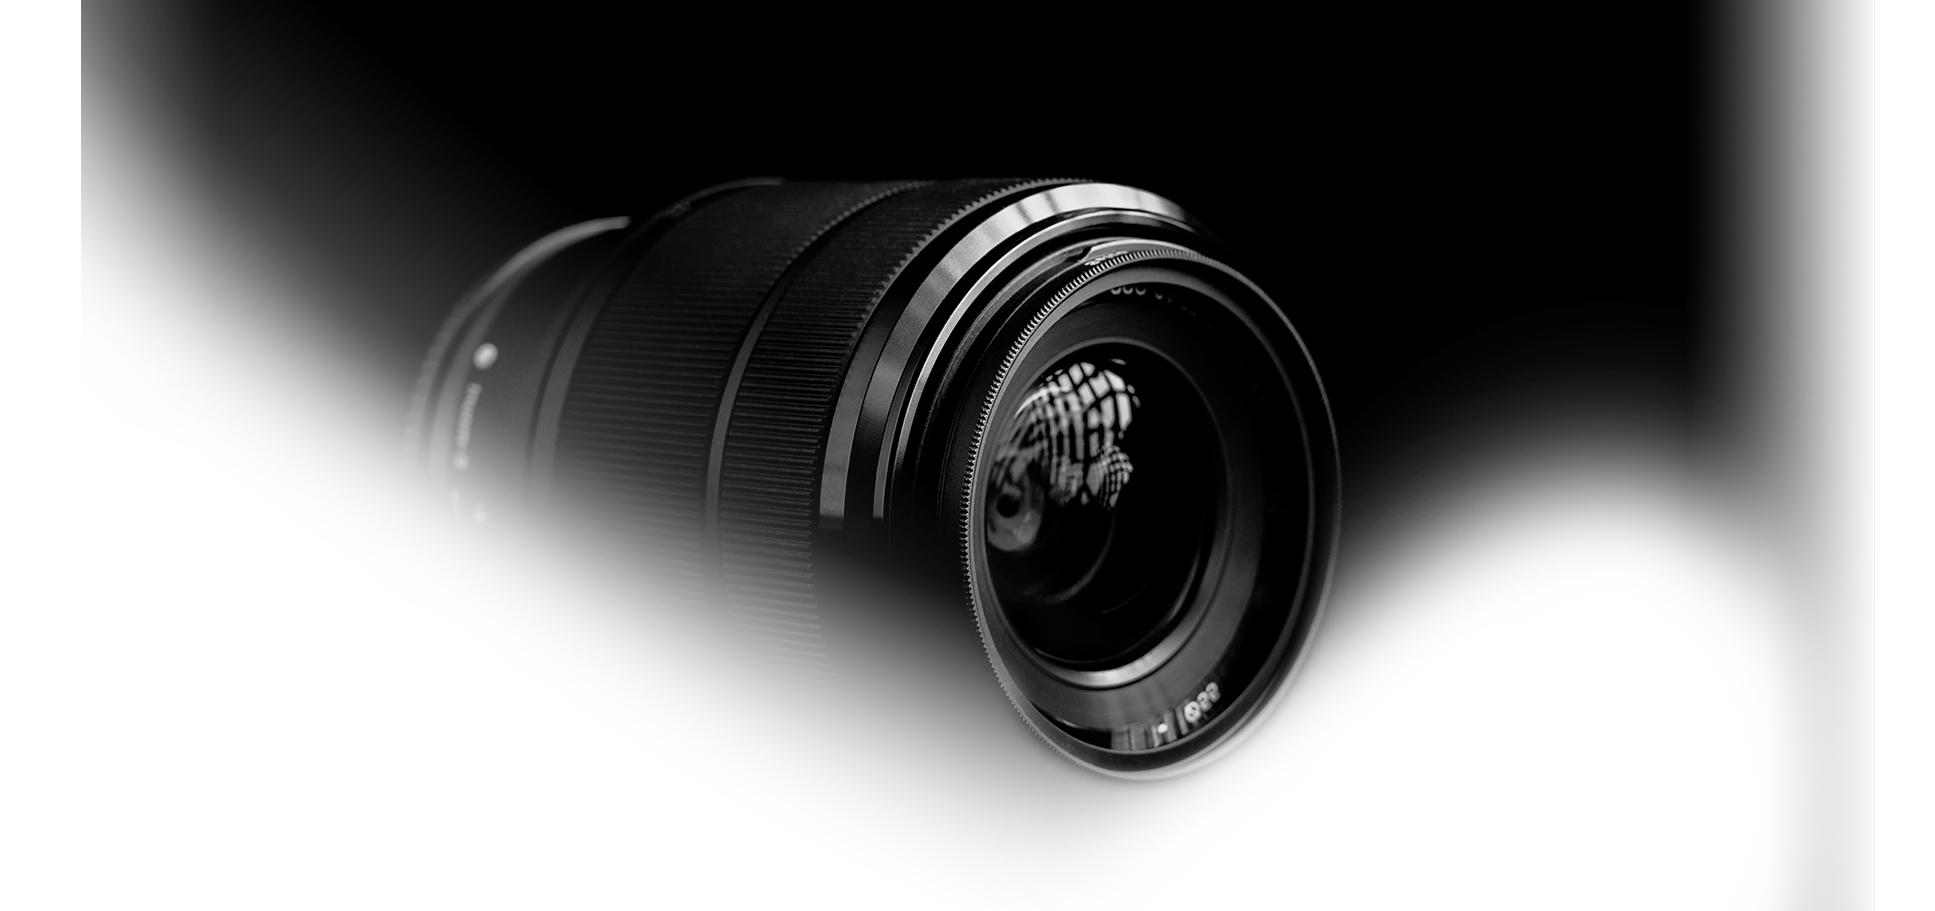 Camera lens for Photography production